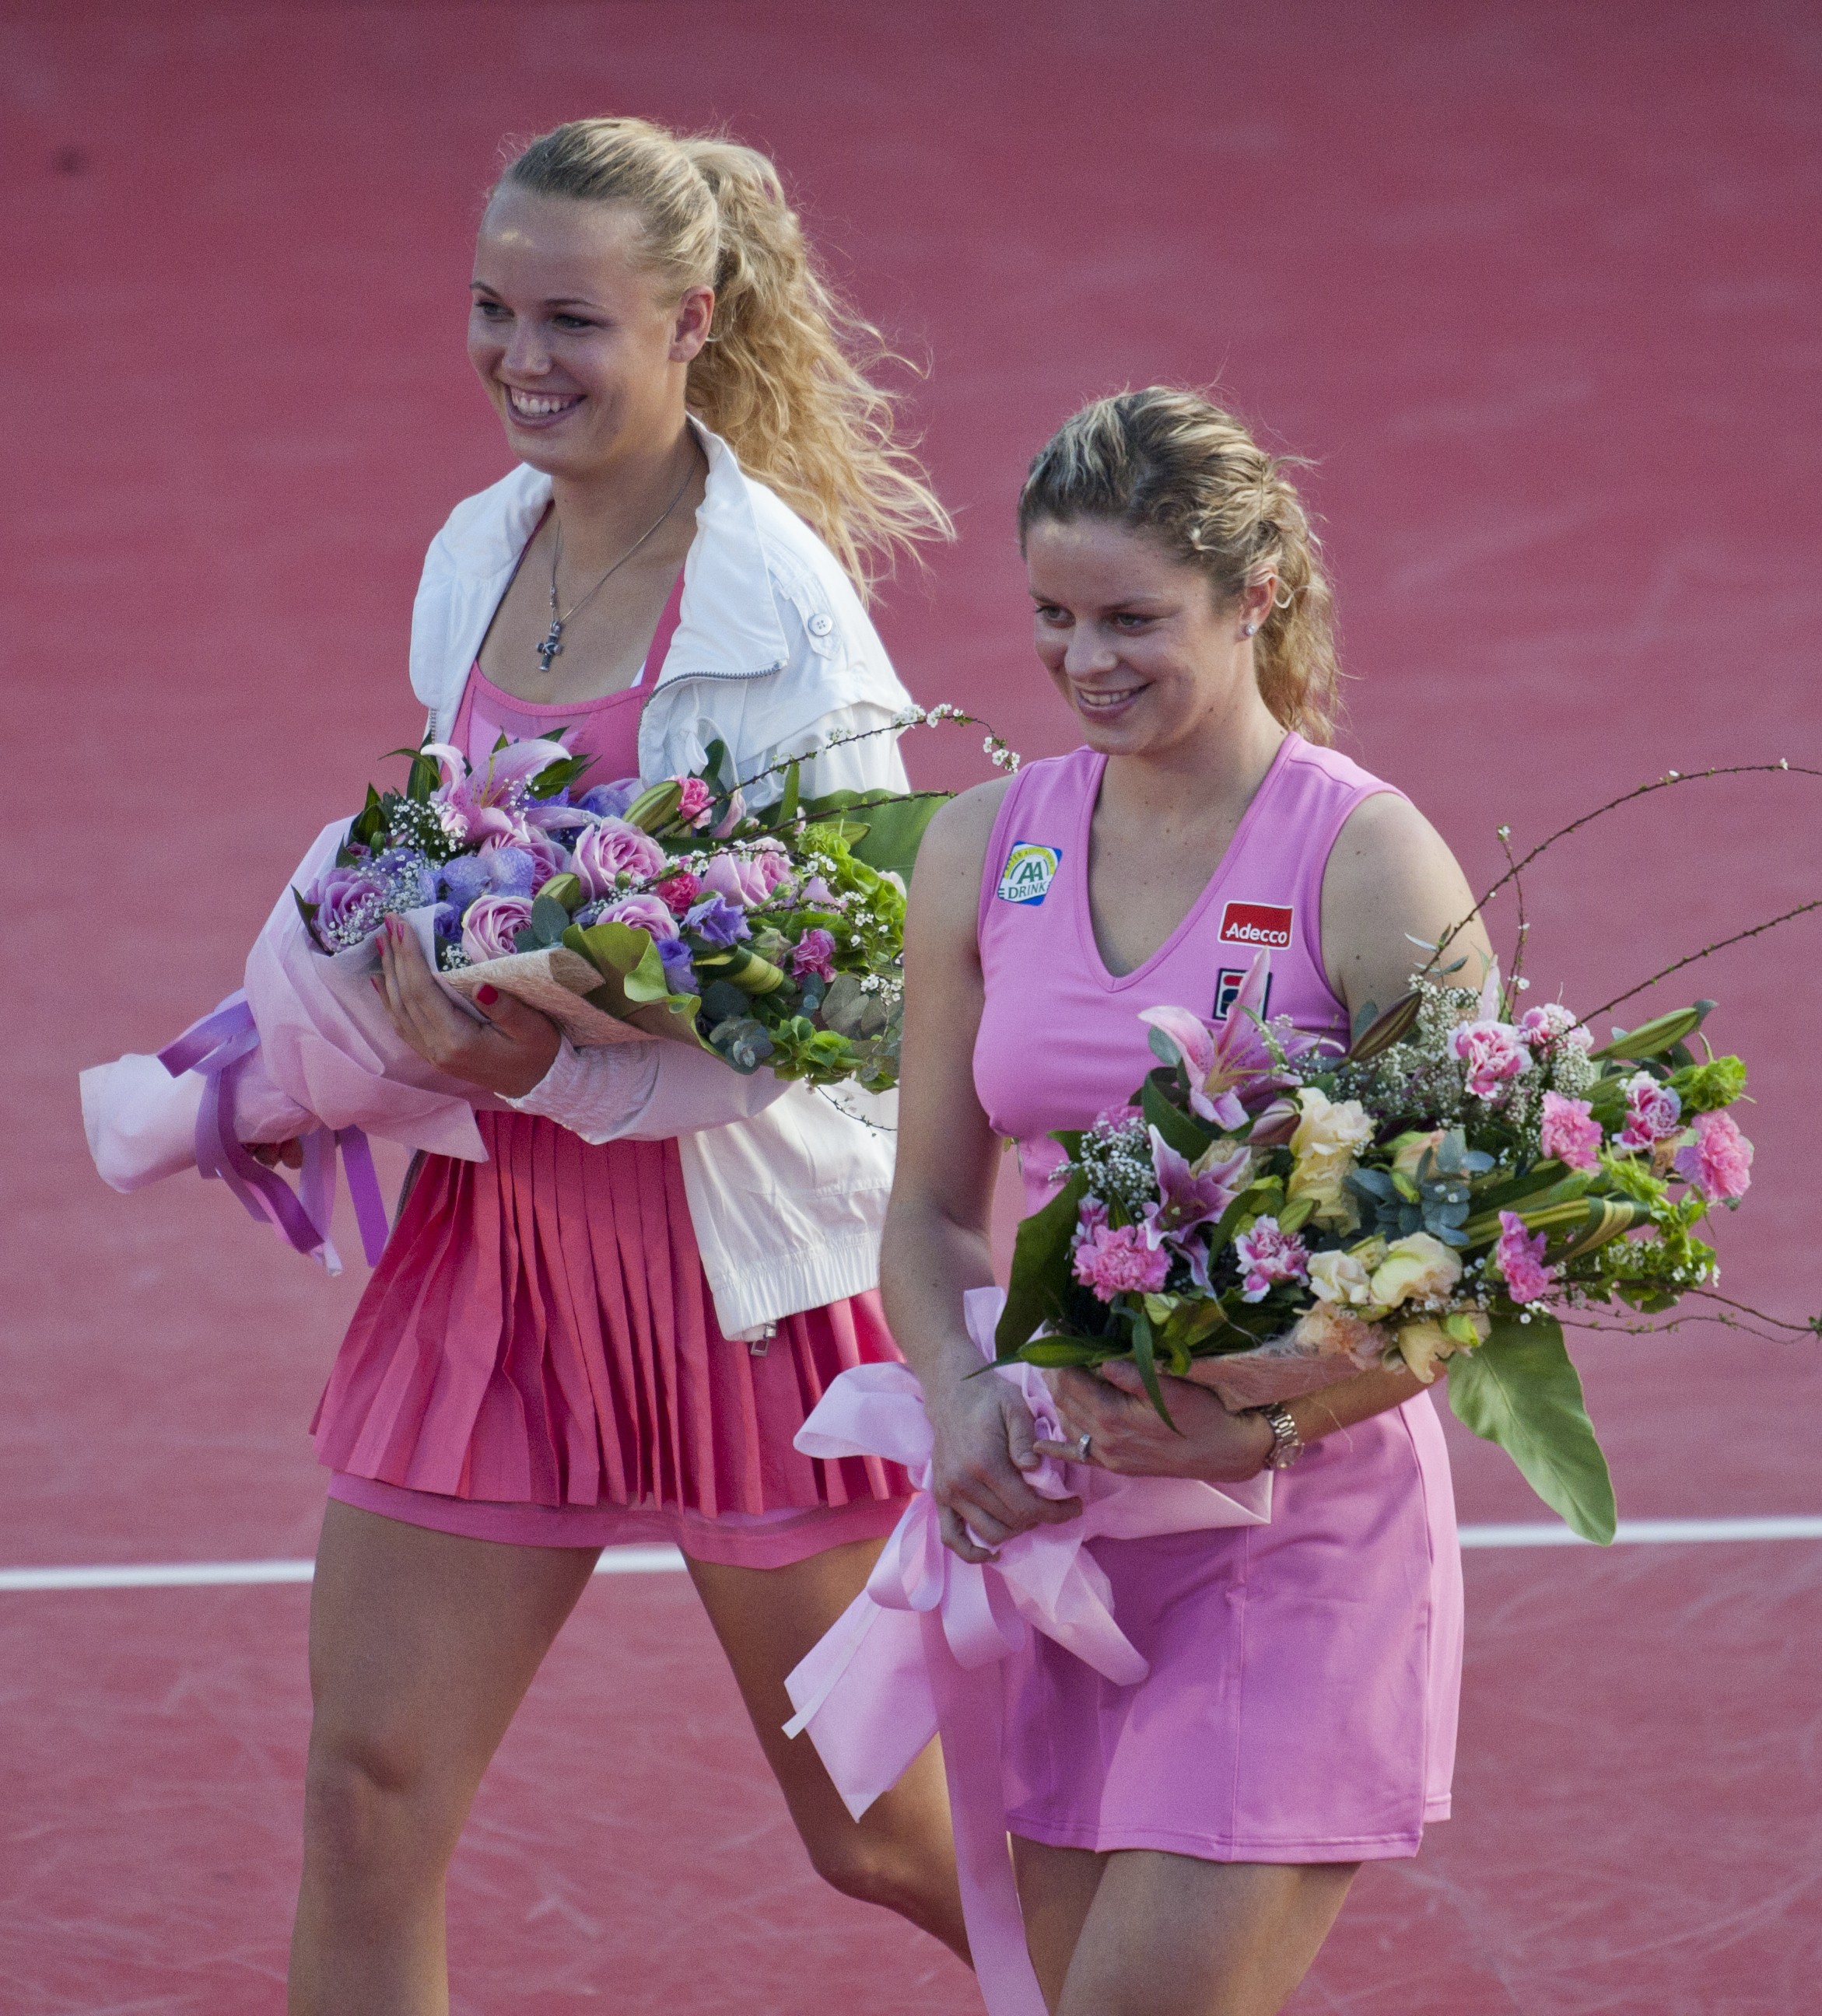 HUA HIN, THAILAND - JANUARY 01:    Caroline Wozniacki of Denmark and Kim Clijsters of Belgium hold the bouquets of flowers before their exhibition match at Centenial Park on January 1, 2011 in Hua Hin, Thailand.  (Photo by Athit Perawongmetha/Getty Images